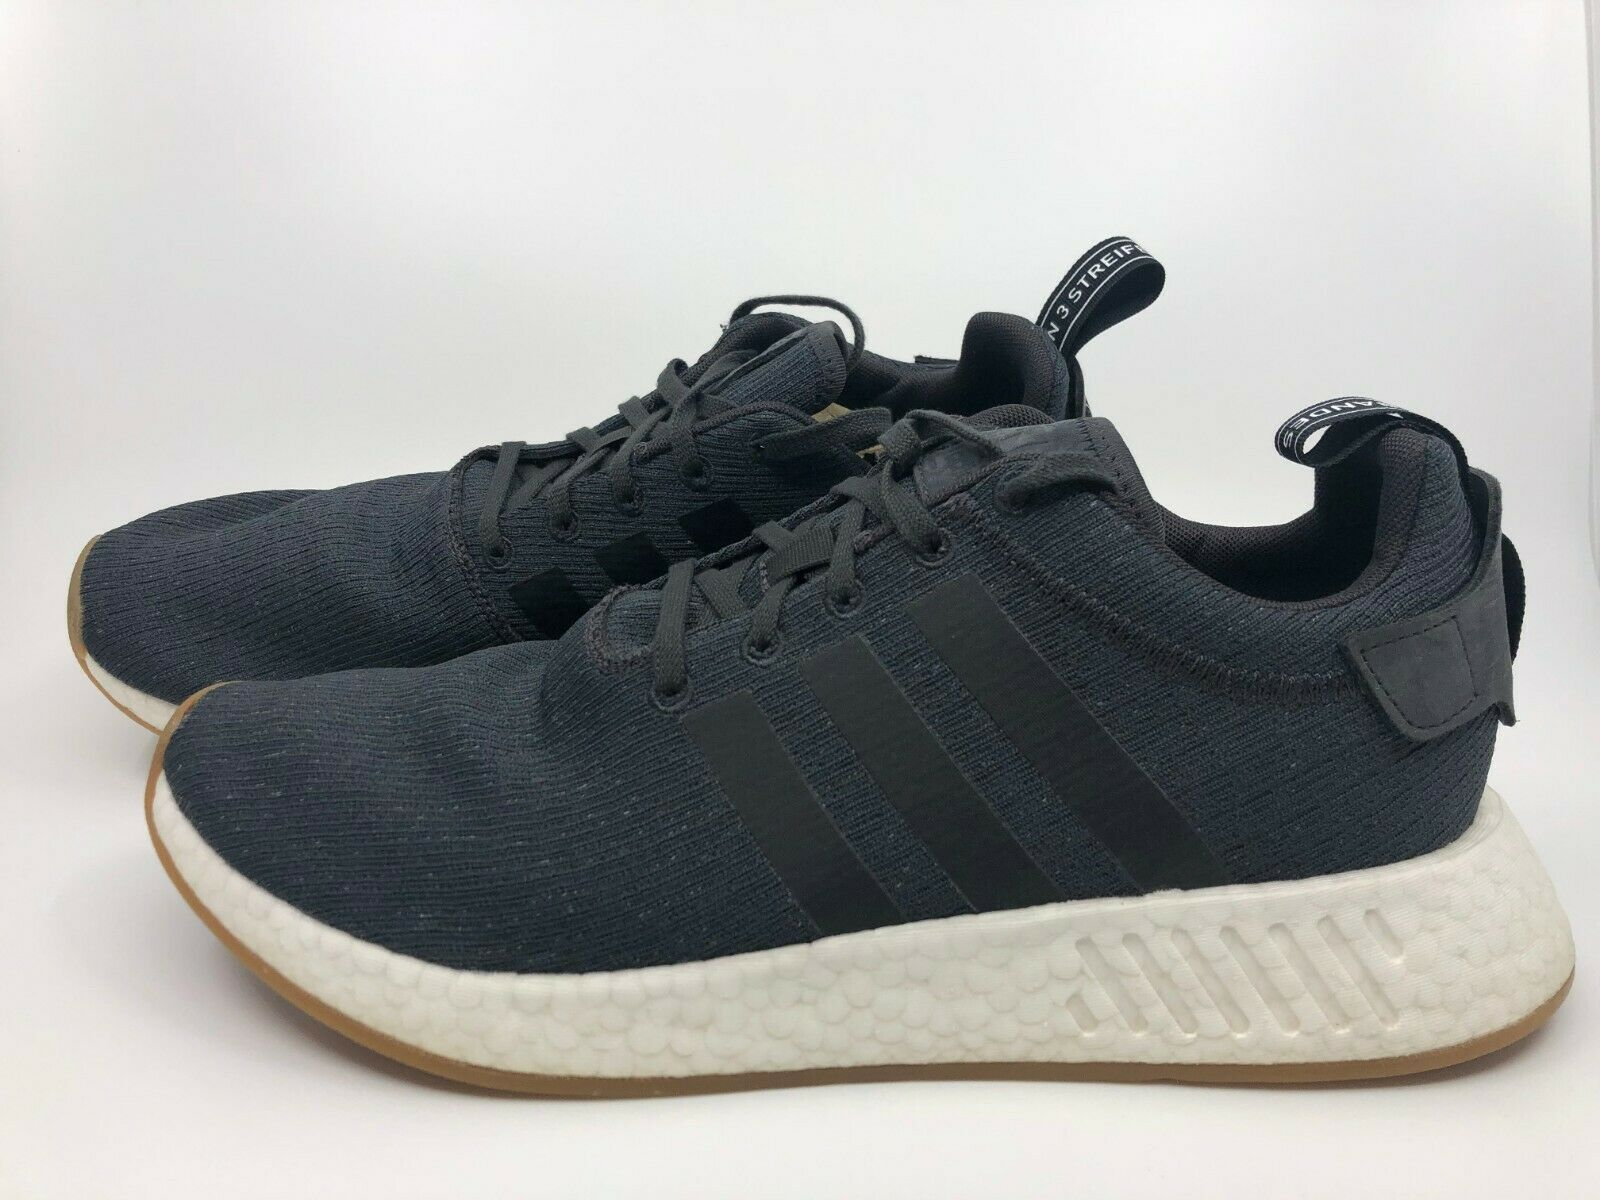 574a83465 adidas NMD R2 Nomad Core Utility Black Trace Gargo By9917 Size 12 ...